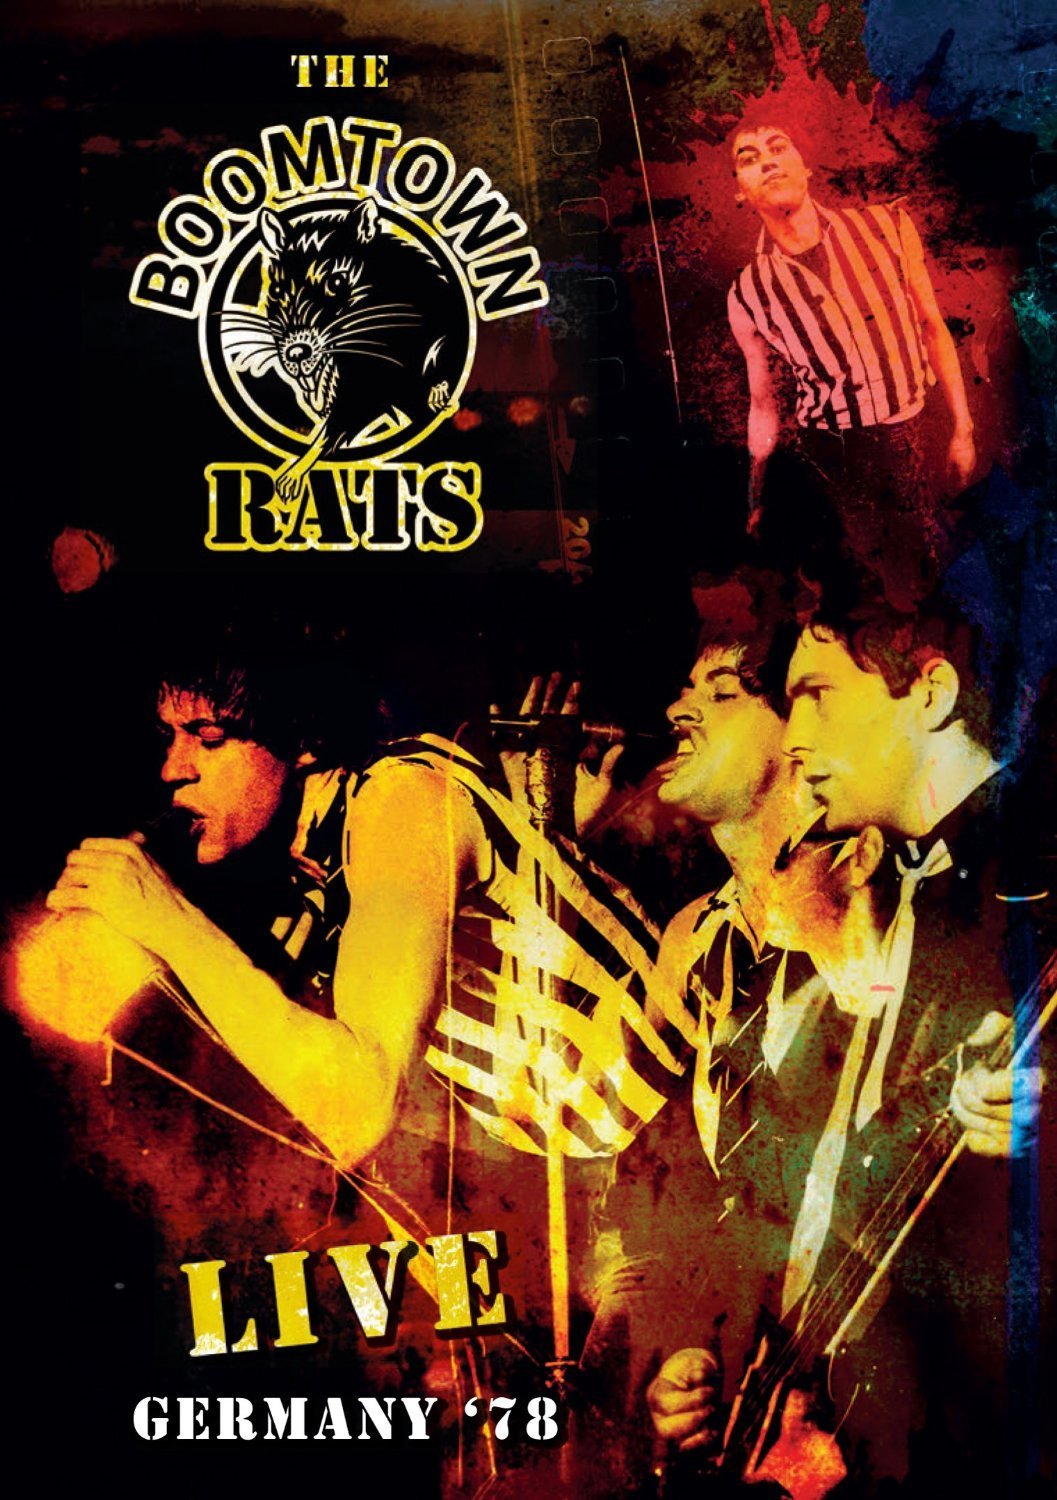 THE BOOMTOWN RATS Live In Germany 78 CD/DVD